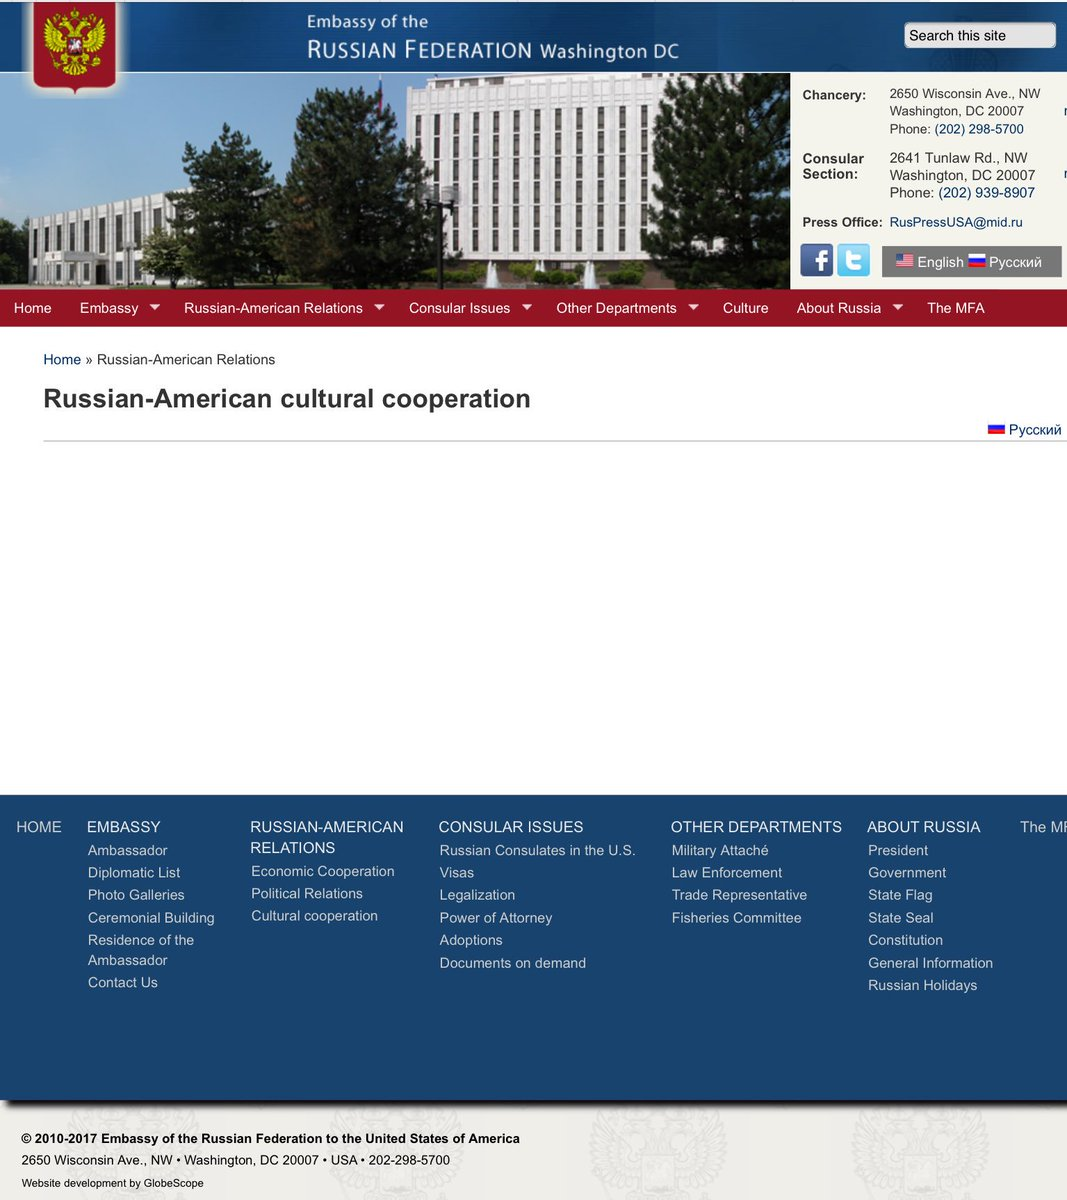 Russian-American: Hmm   All three sections about Russian